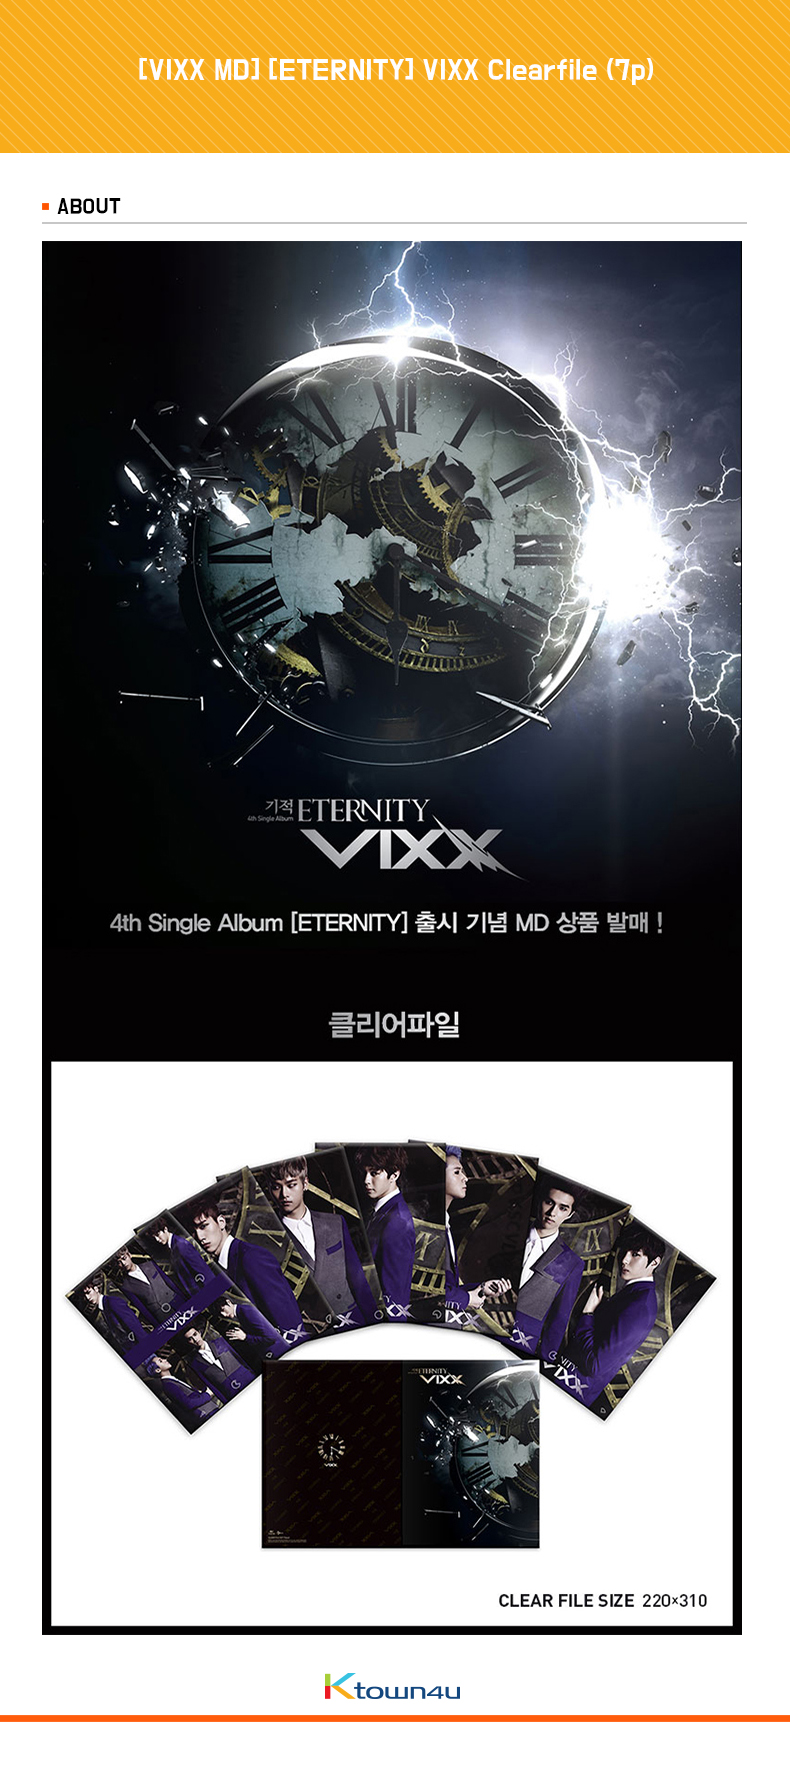 VIXX - Clearfile (7p) [VIXX ETERNITY]